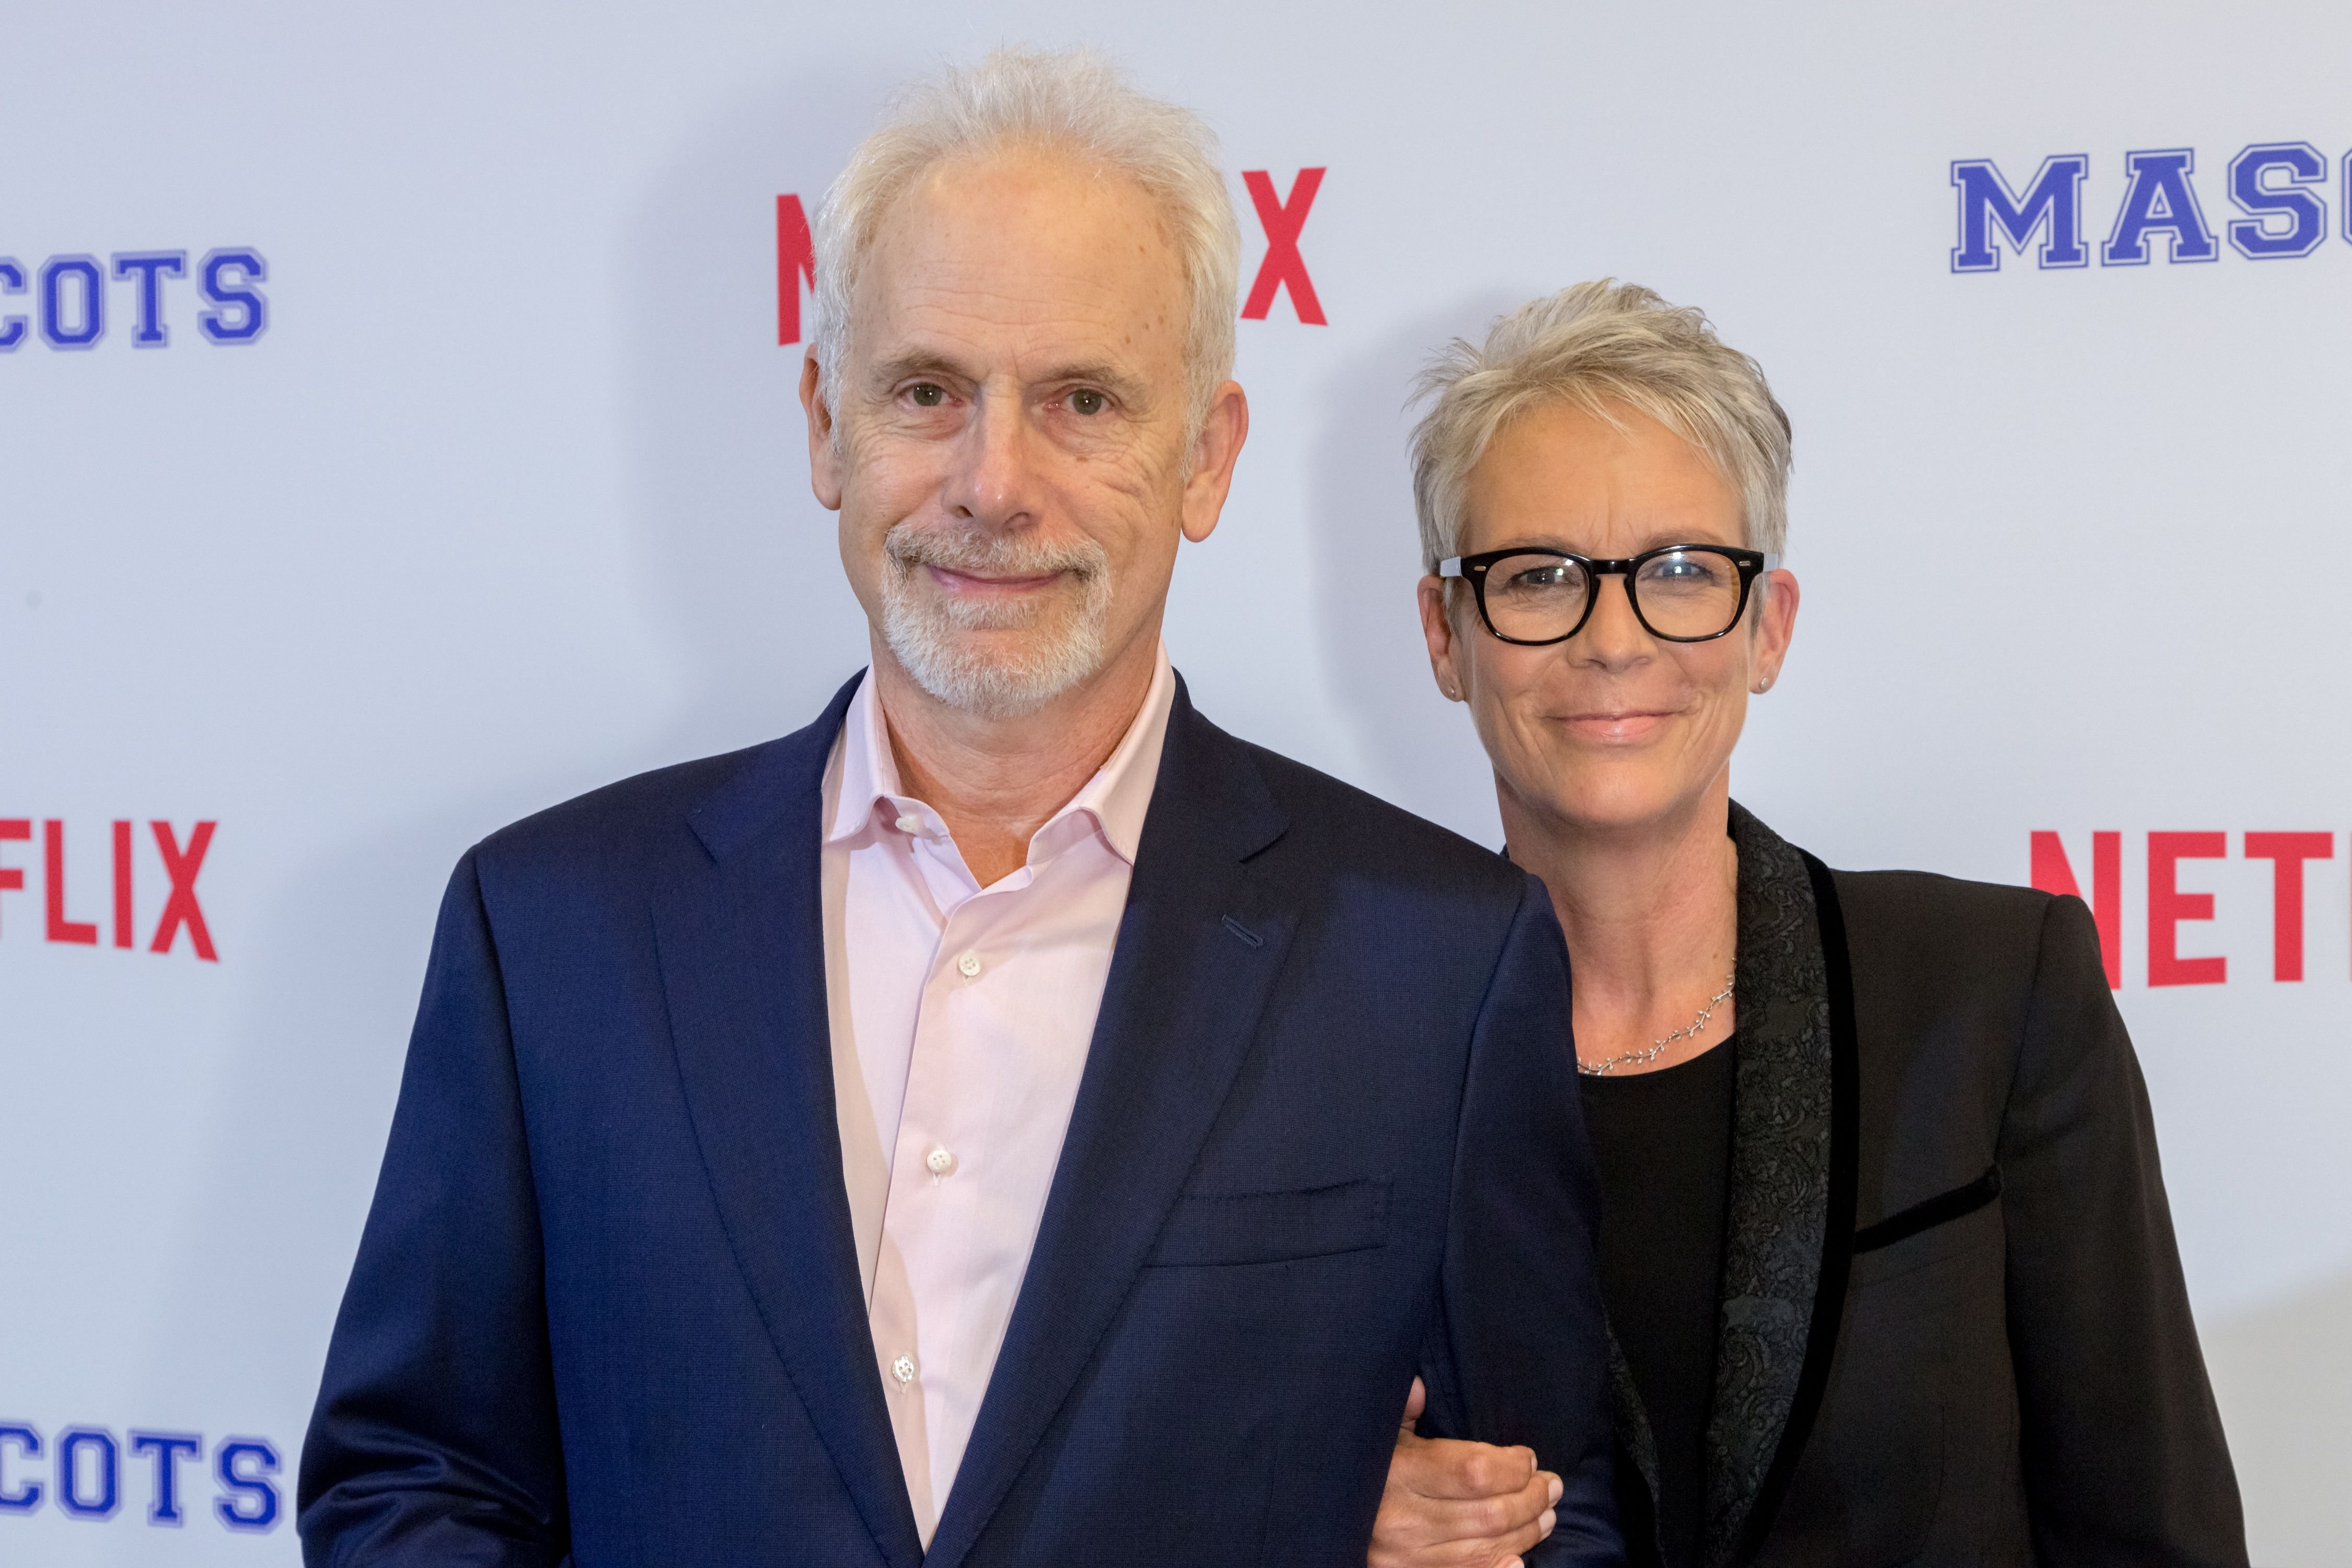 """Jamie Lee Curtis and husband Christopher Guest at a Screening Of Netflix's """"Mascots"""" at the Linwood Dunn Theater in Los Angeles, California   Photo: Greg Doherty/Getty Images"""